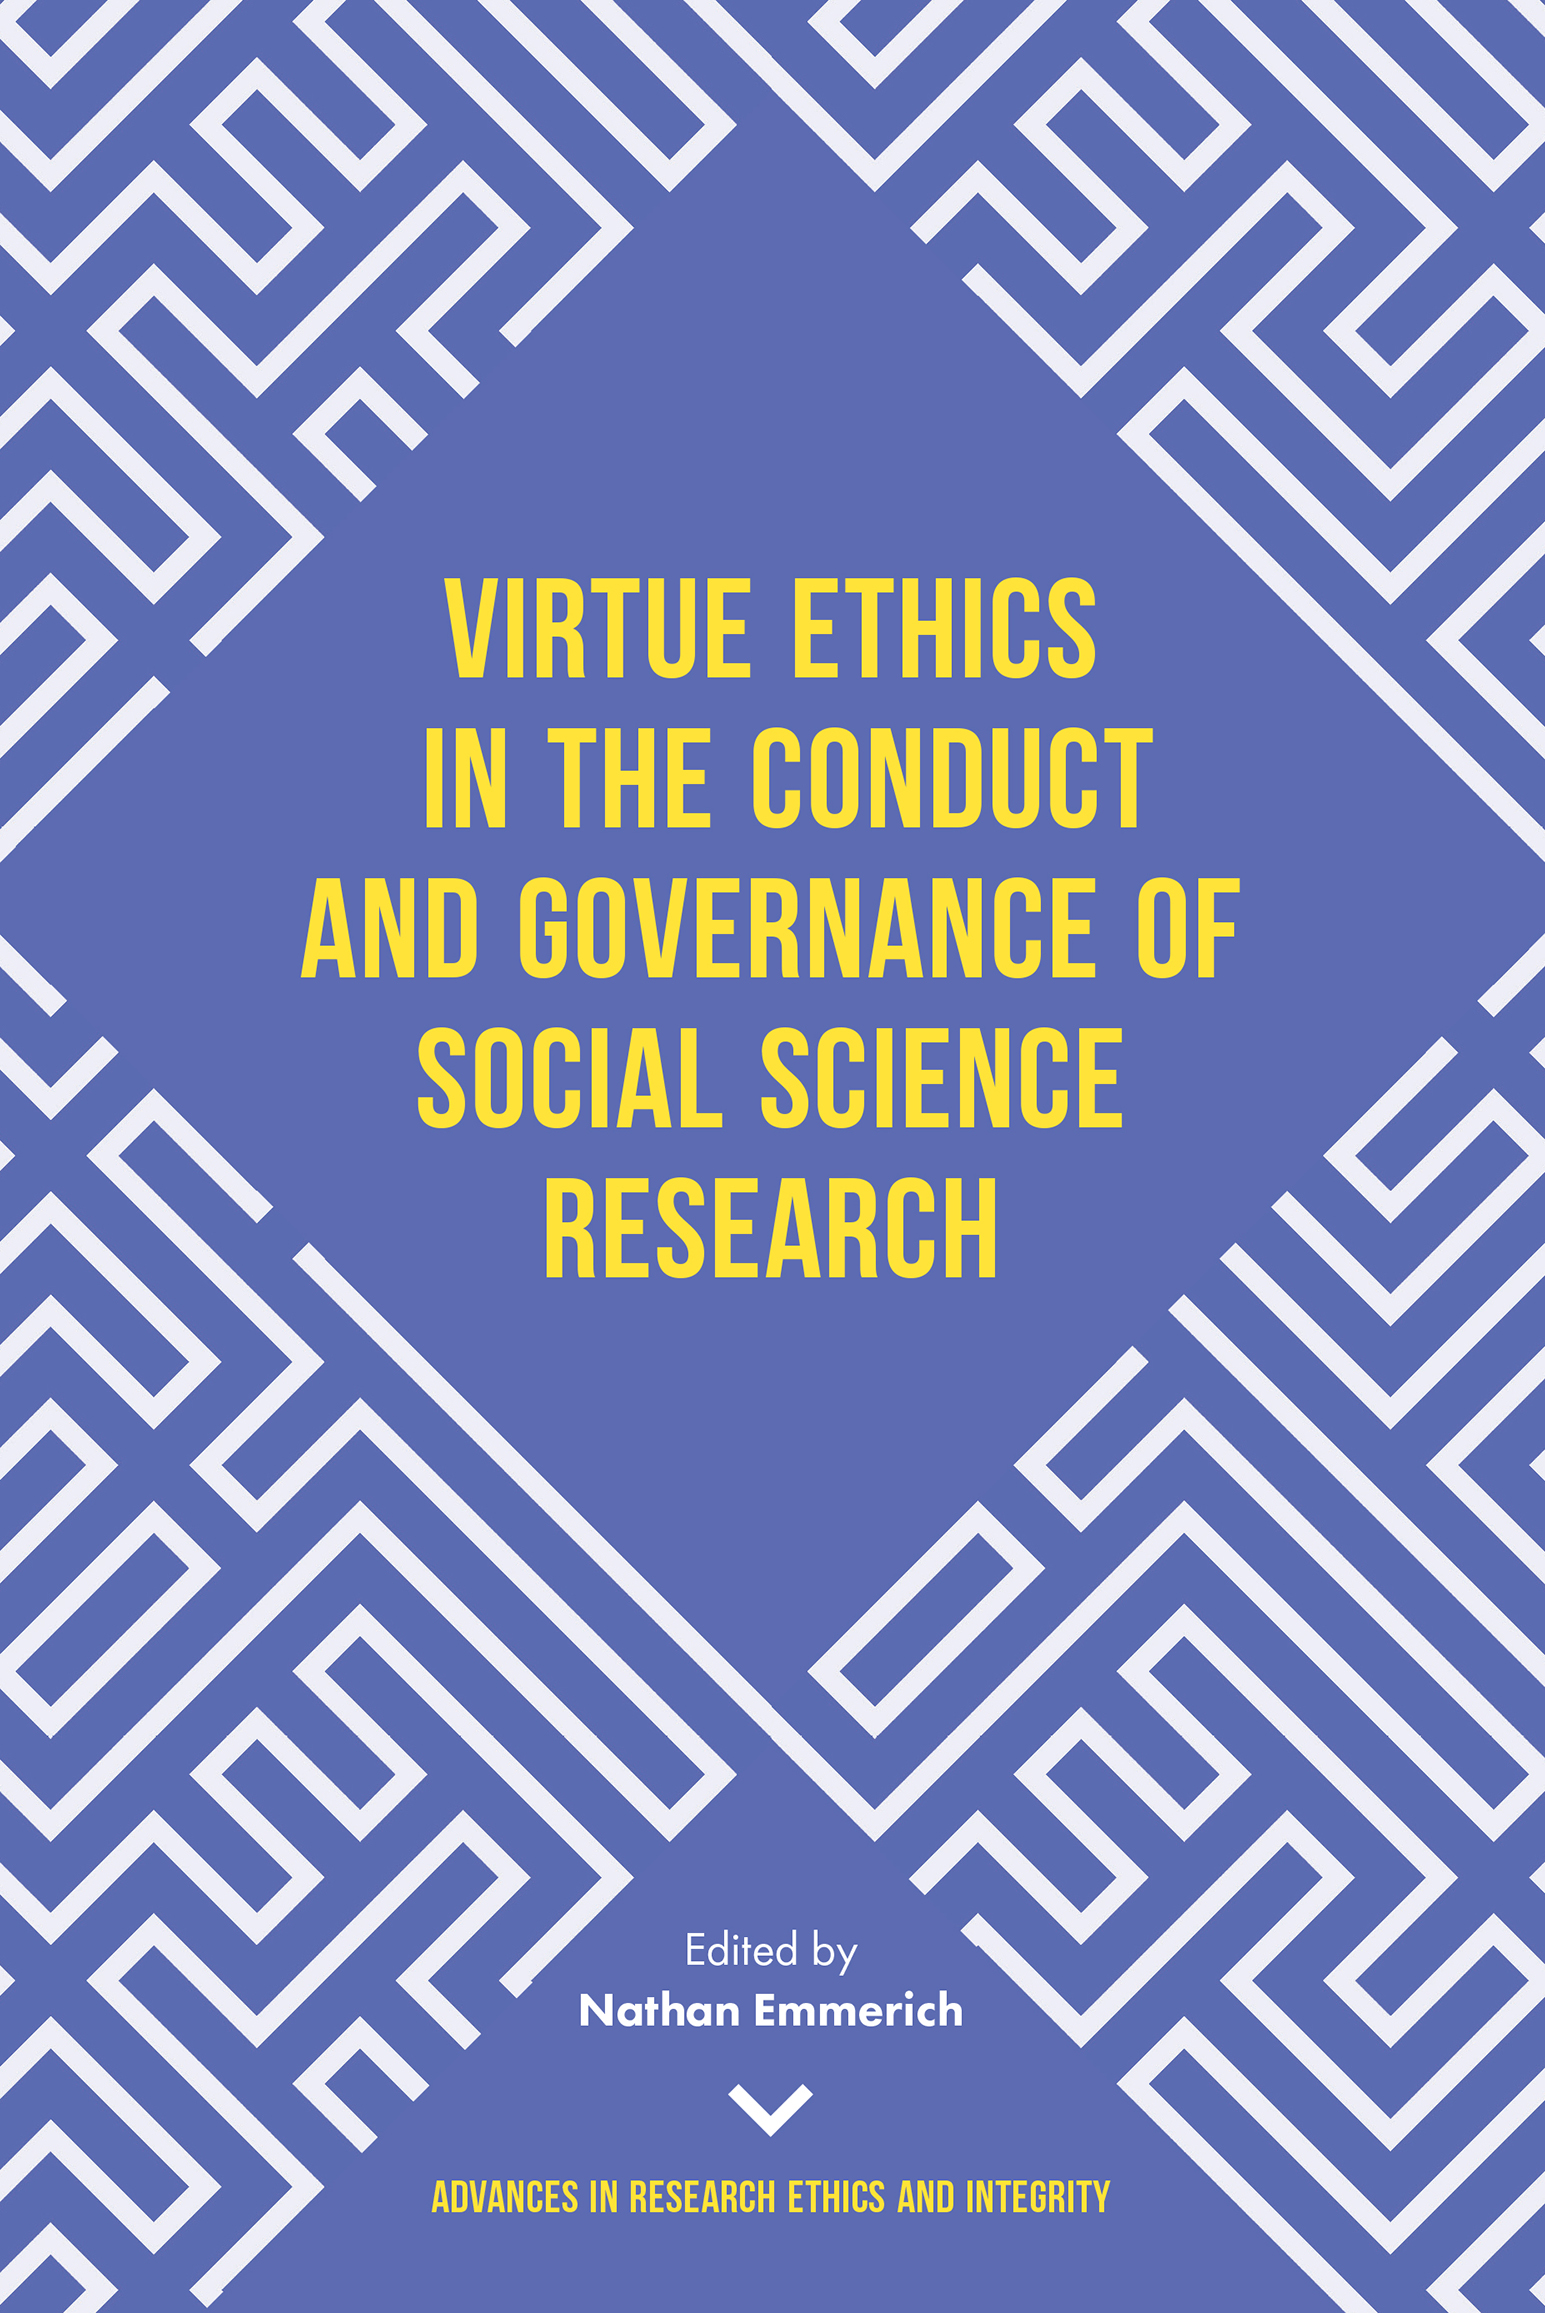 Book cover for Virtue Ethics in the Conduct and Governance of Social Science Research a book by Nathan  Emmerich